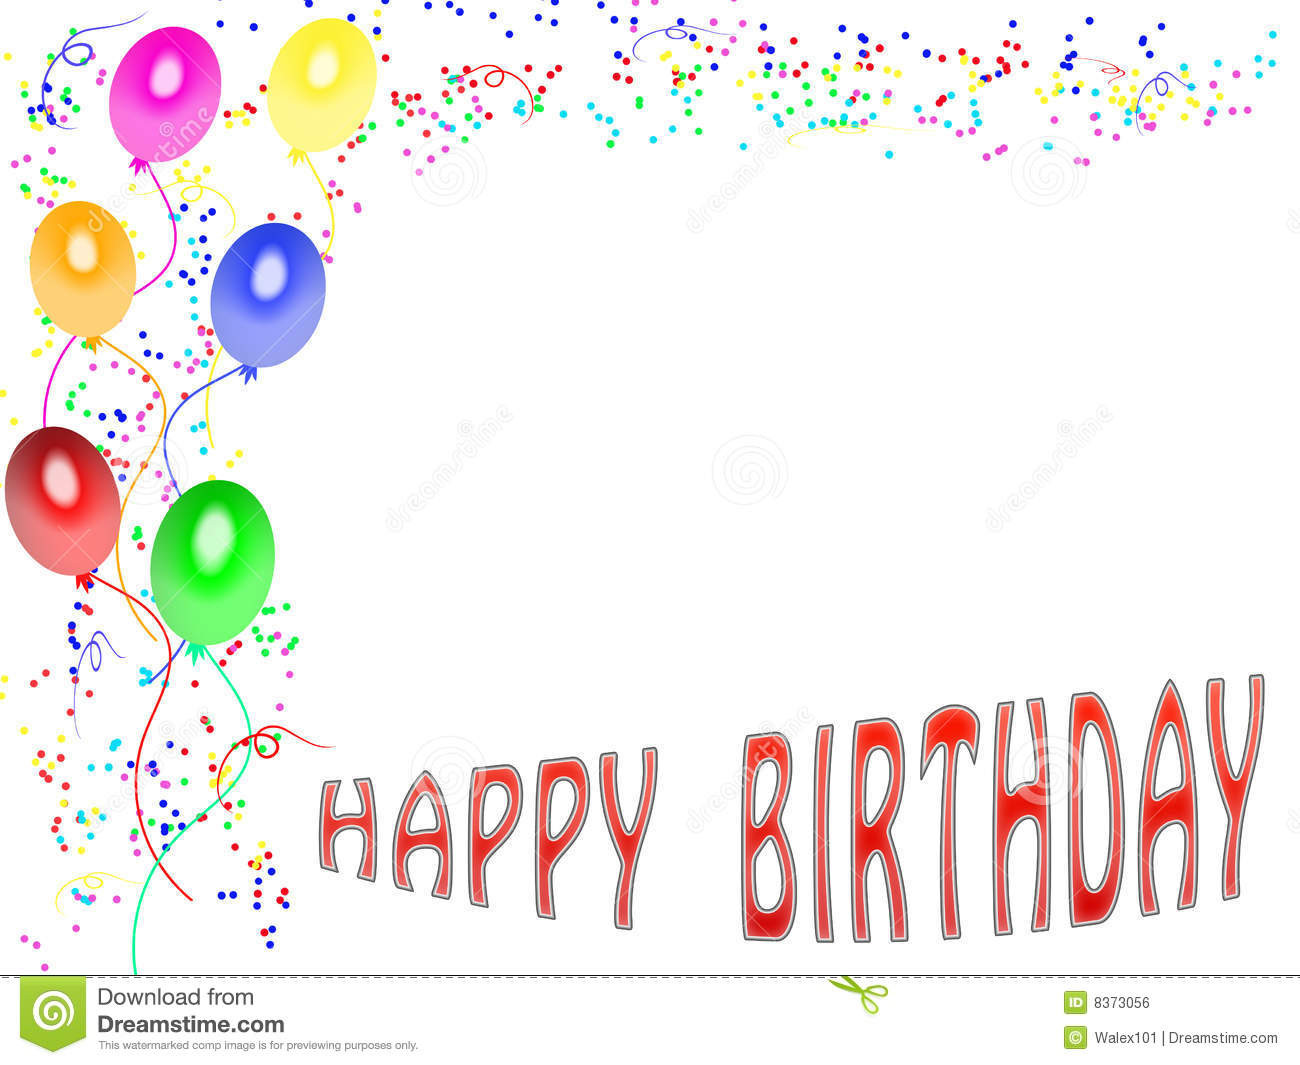 Best ideas about Birthday Card Template . Save or Pin Happy Birthday Card Template intended for Happy Birthday Now.